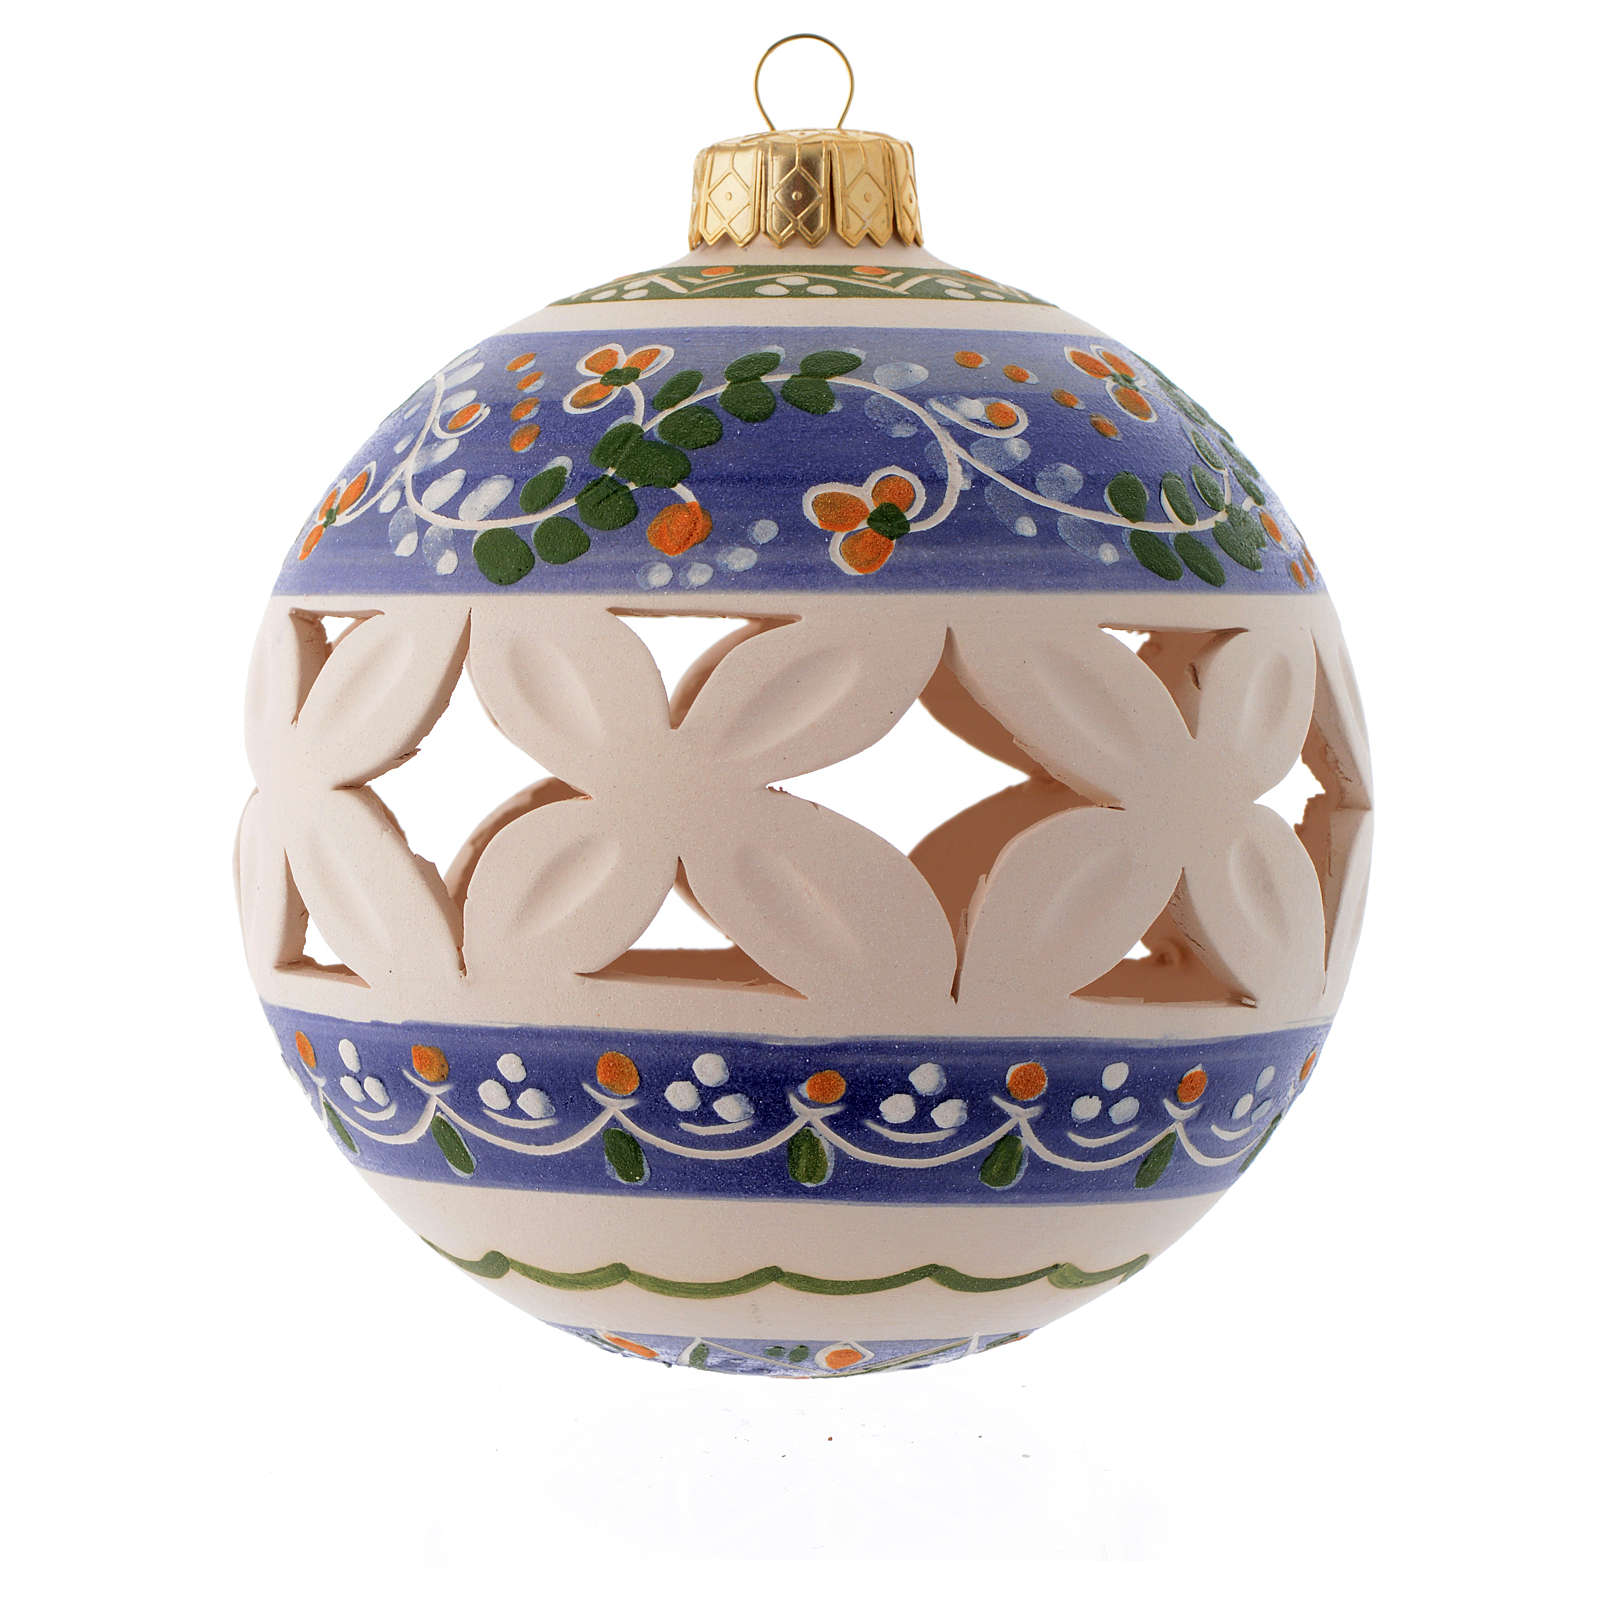 White Christmas bauble with blue decorations sized 100 mm 4